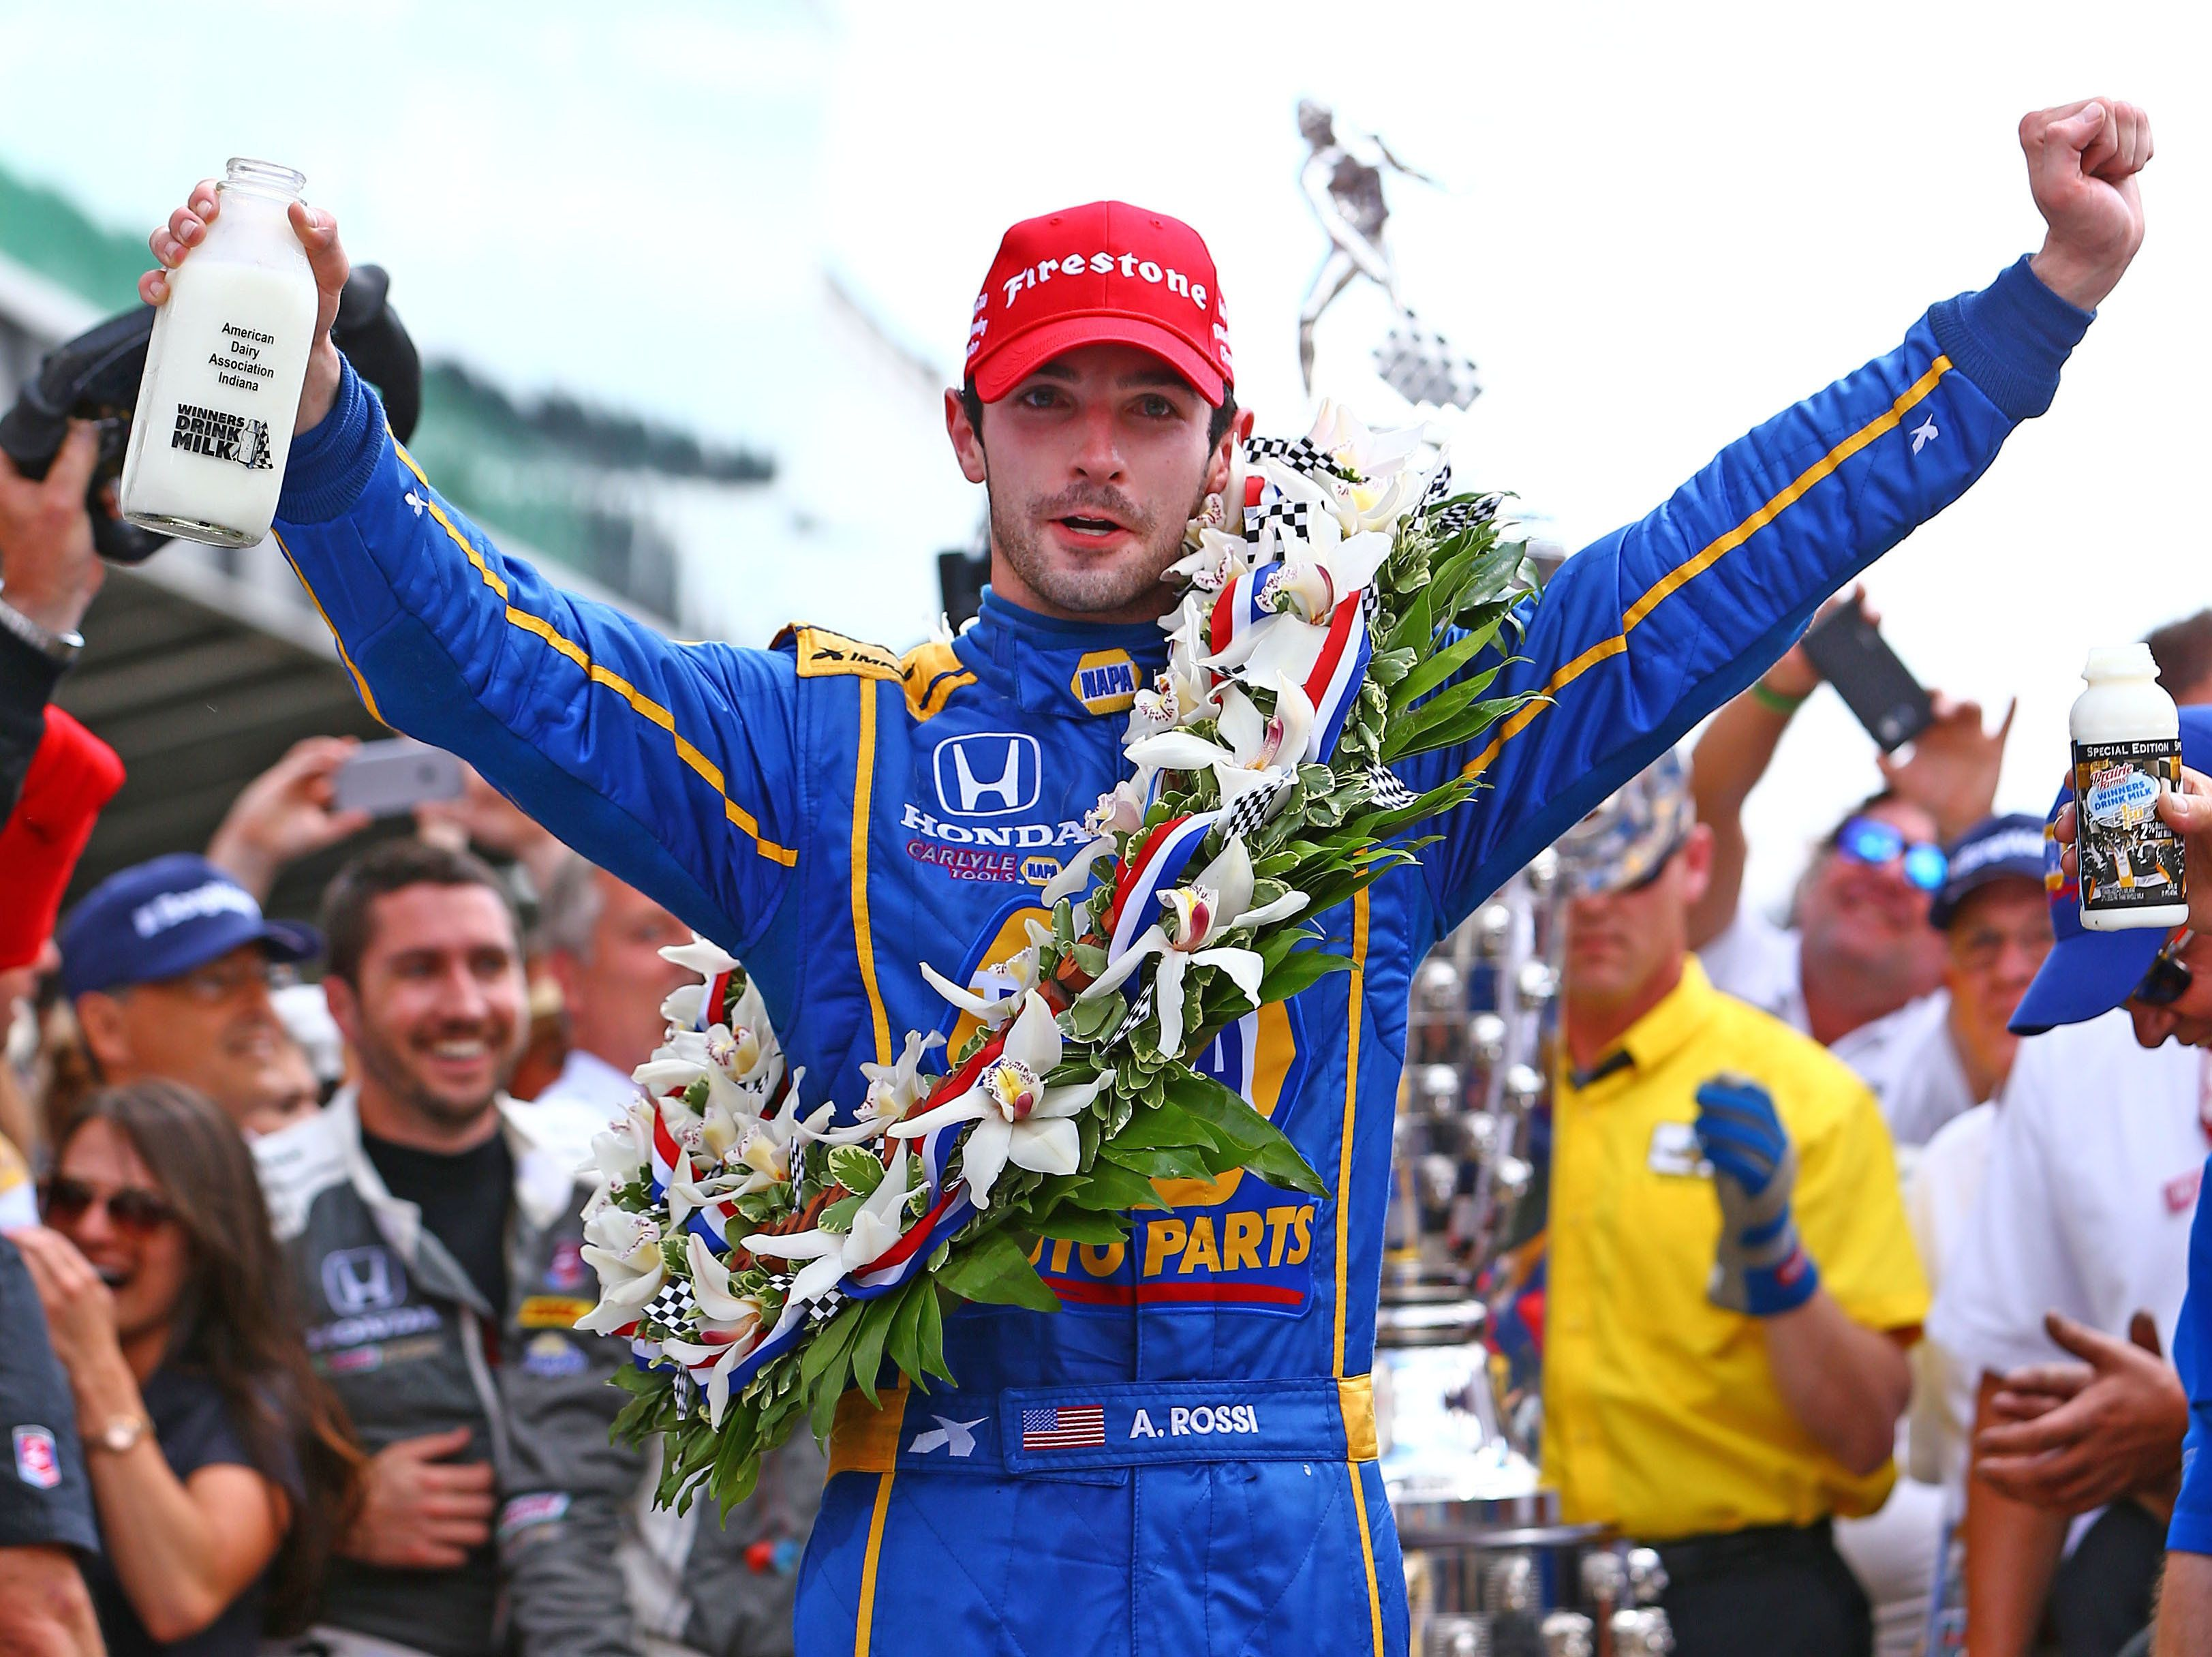 IndyCar Series driver Alexander Rossi celebrates after winning the 100th running of the Indianapolis 500.